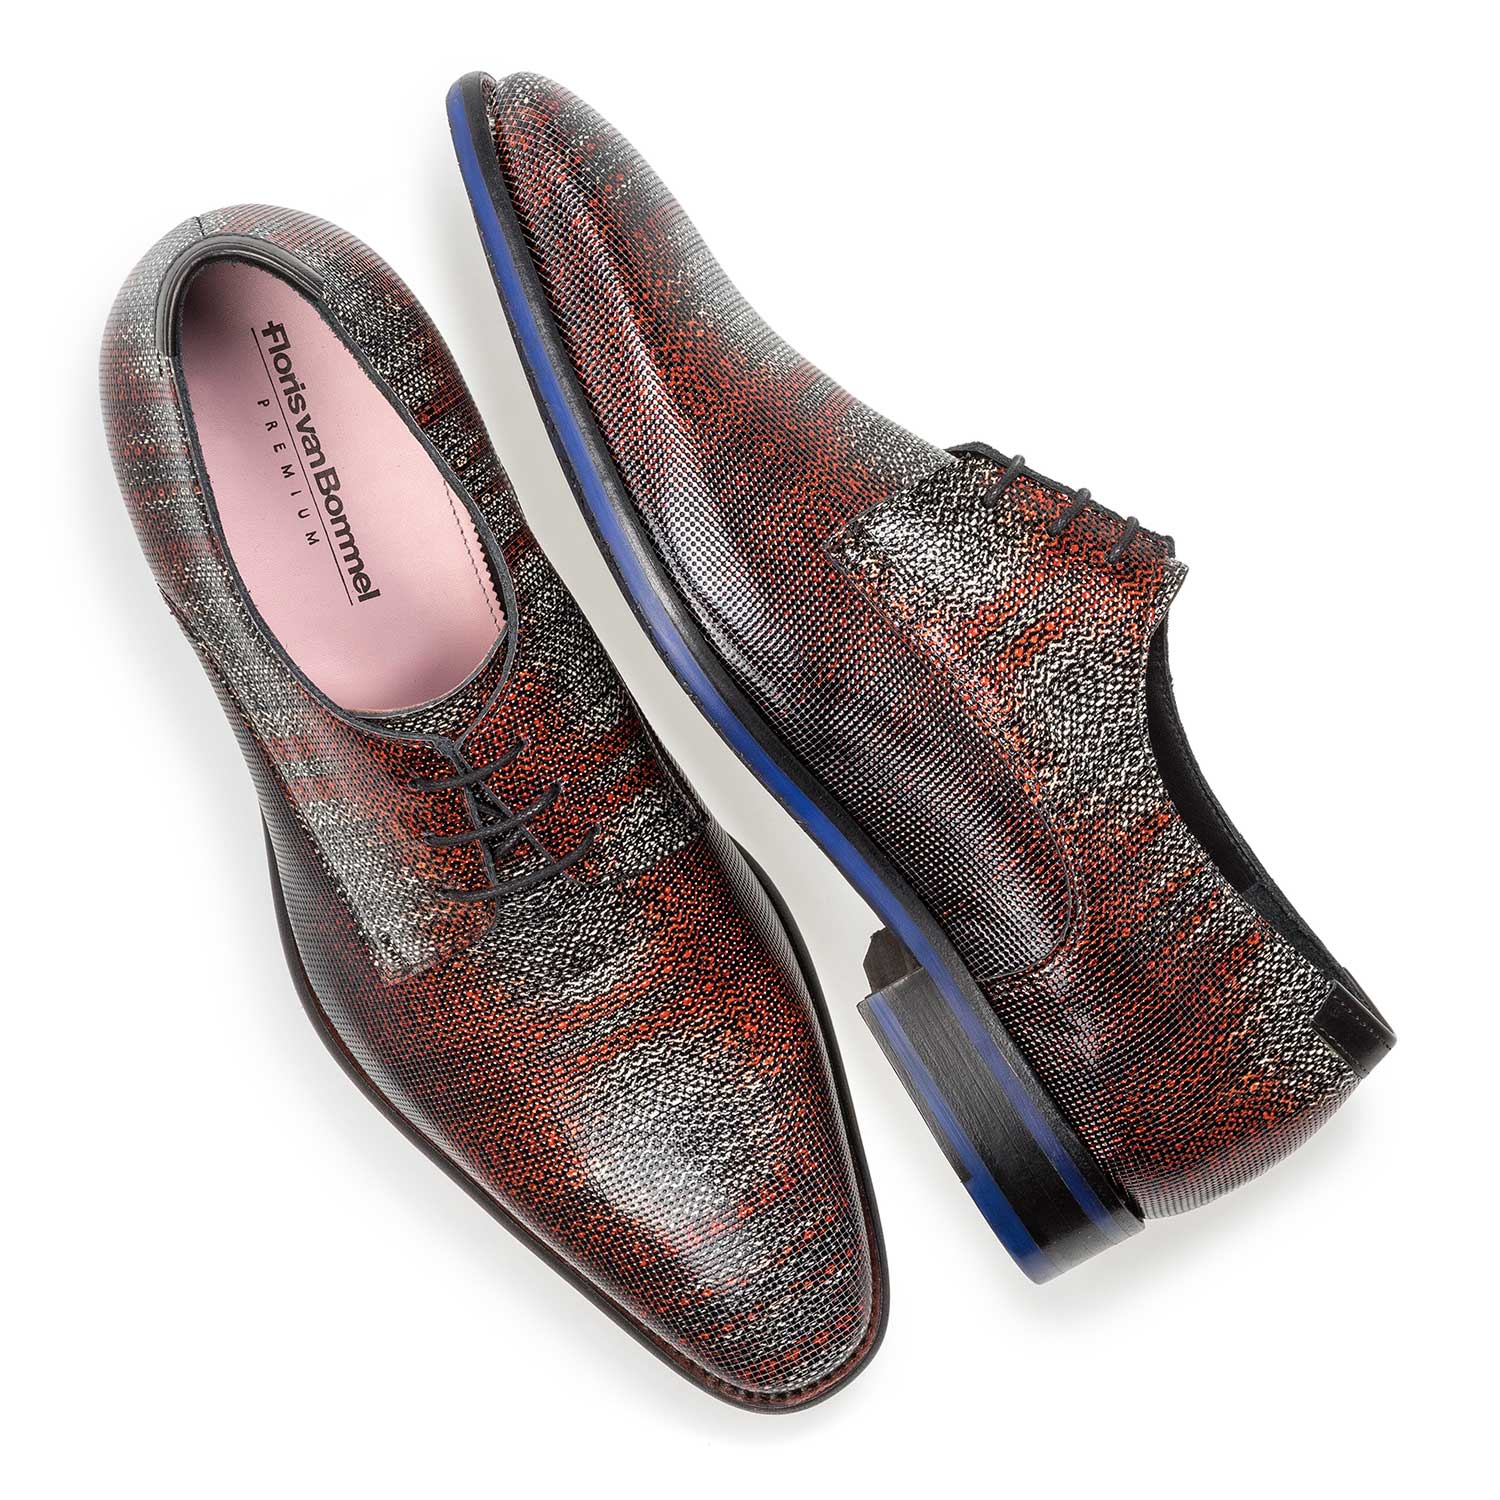 18097/02 - Premium dark red printed patent leather lace shoe